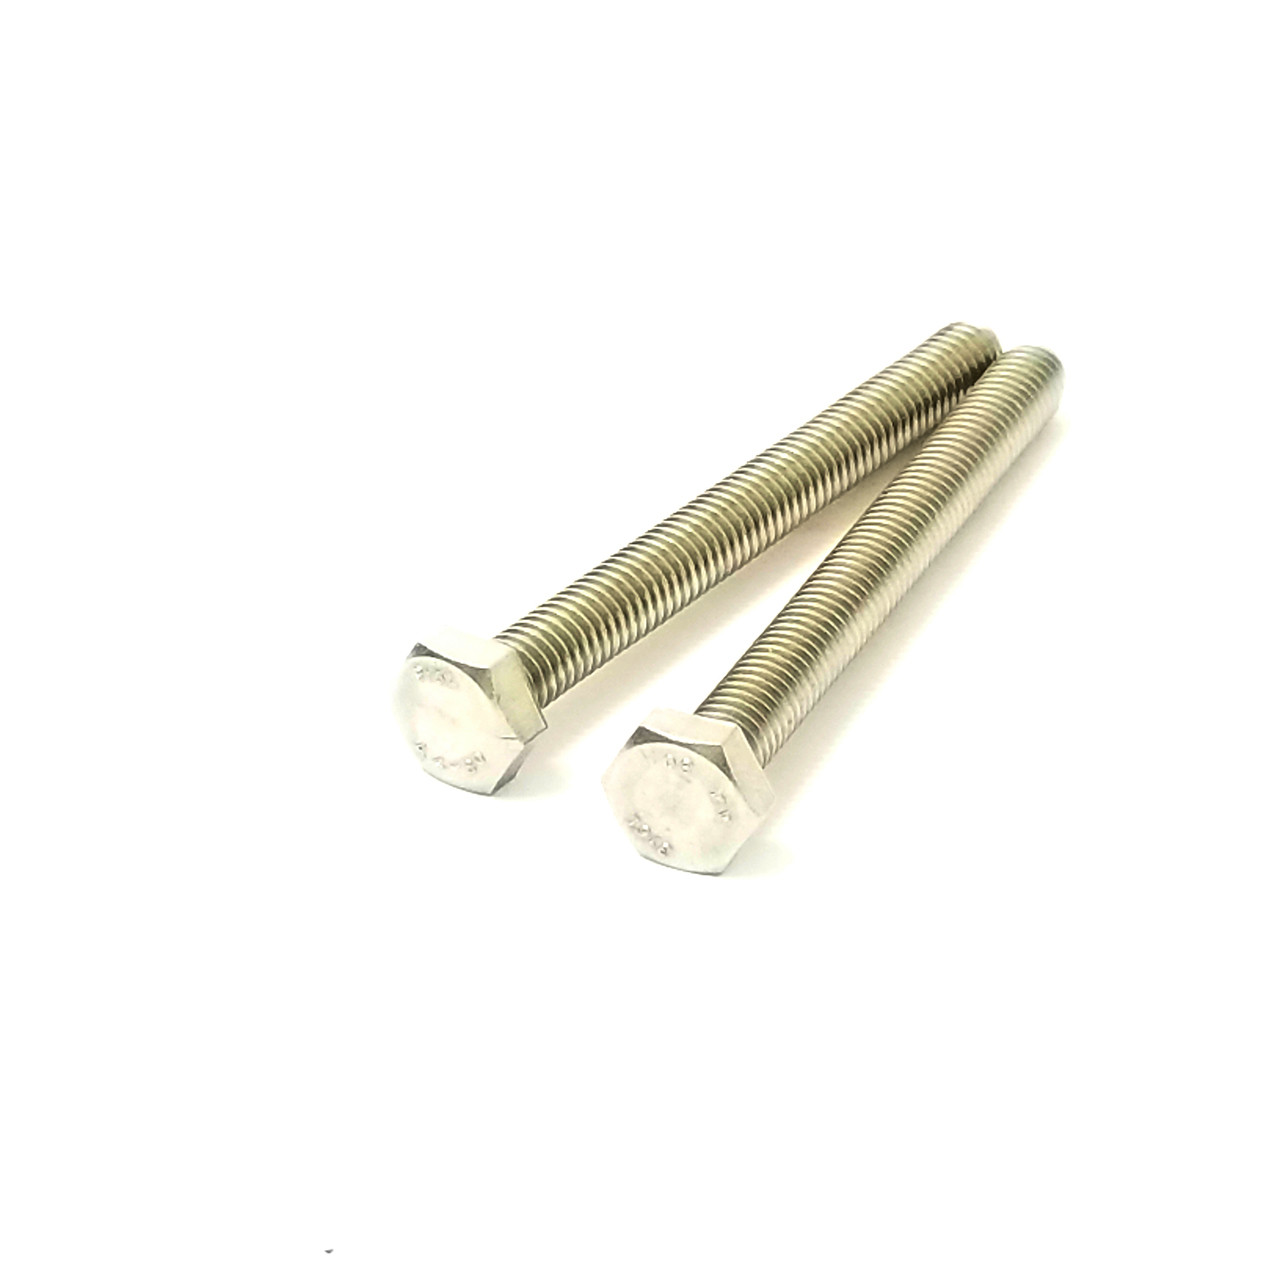 HHB8316 Hex head bolt M6x30 316 Stainless